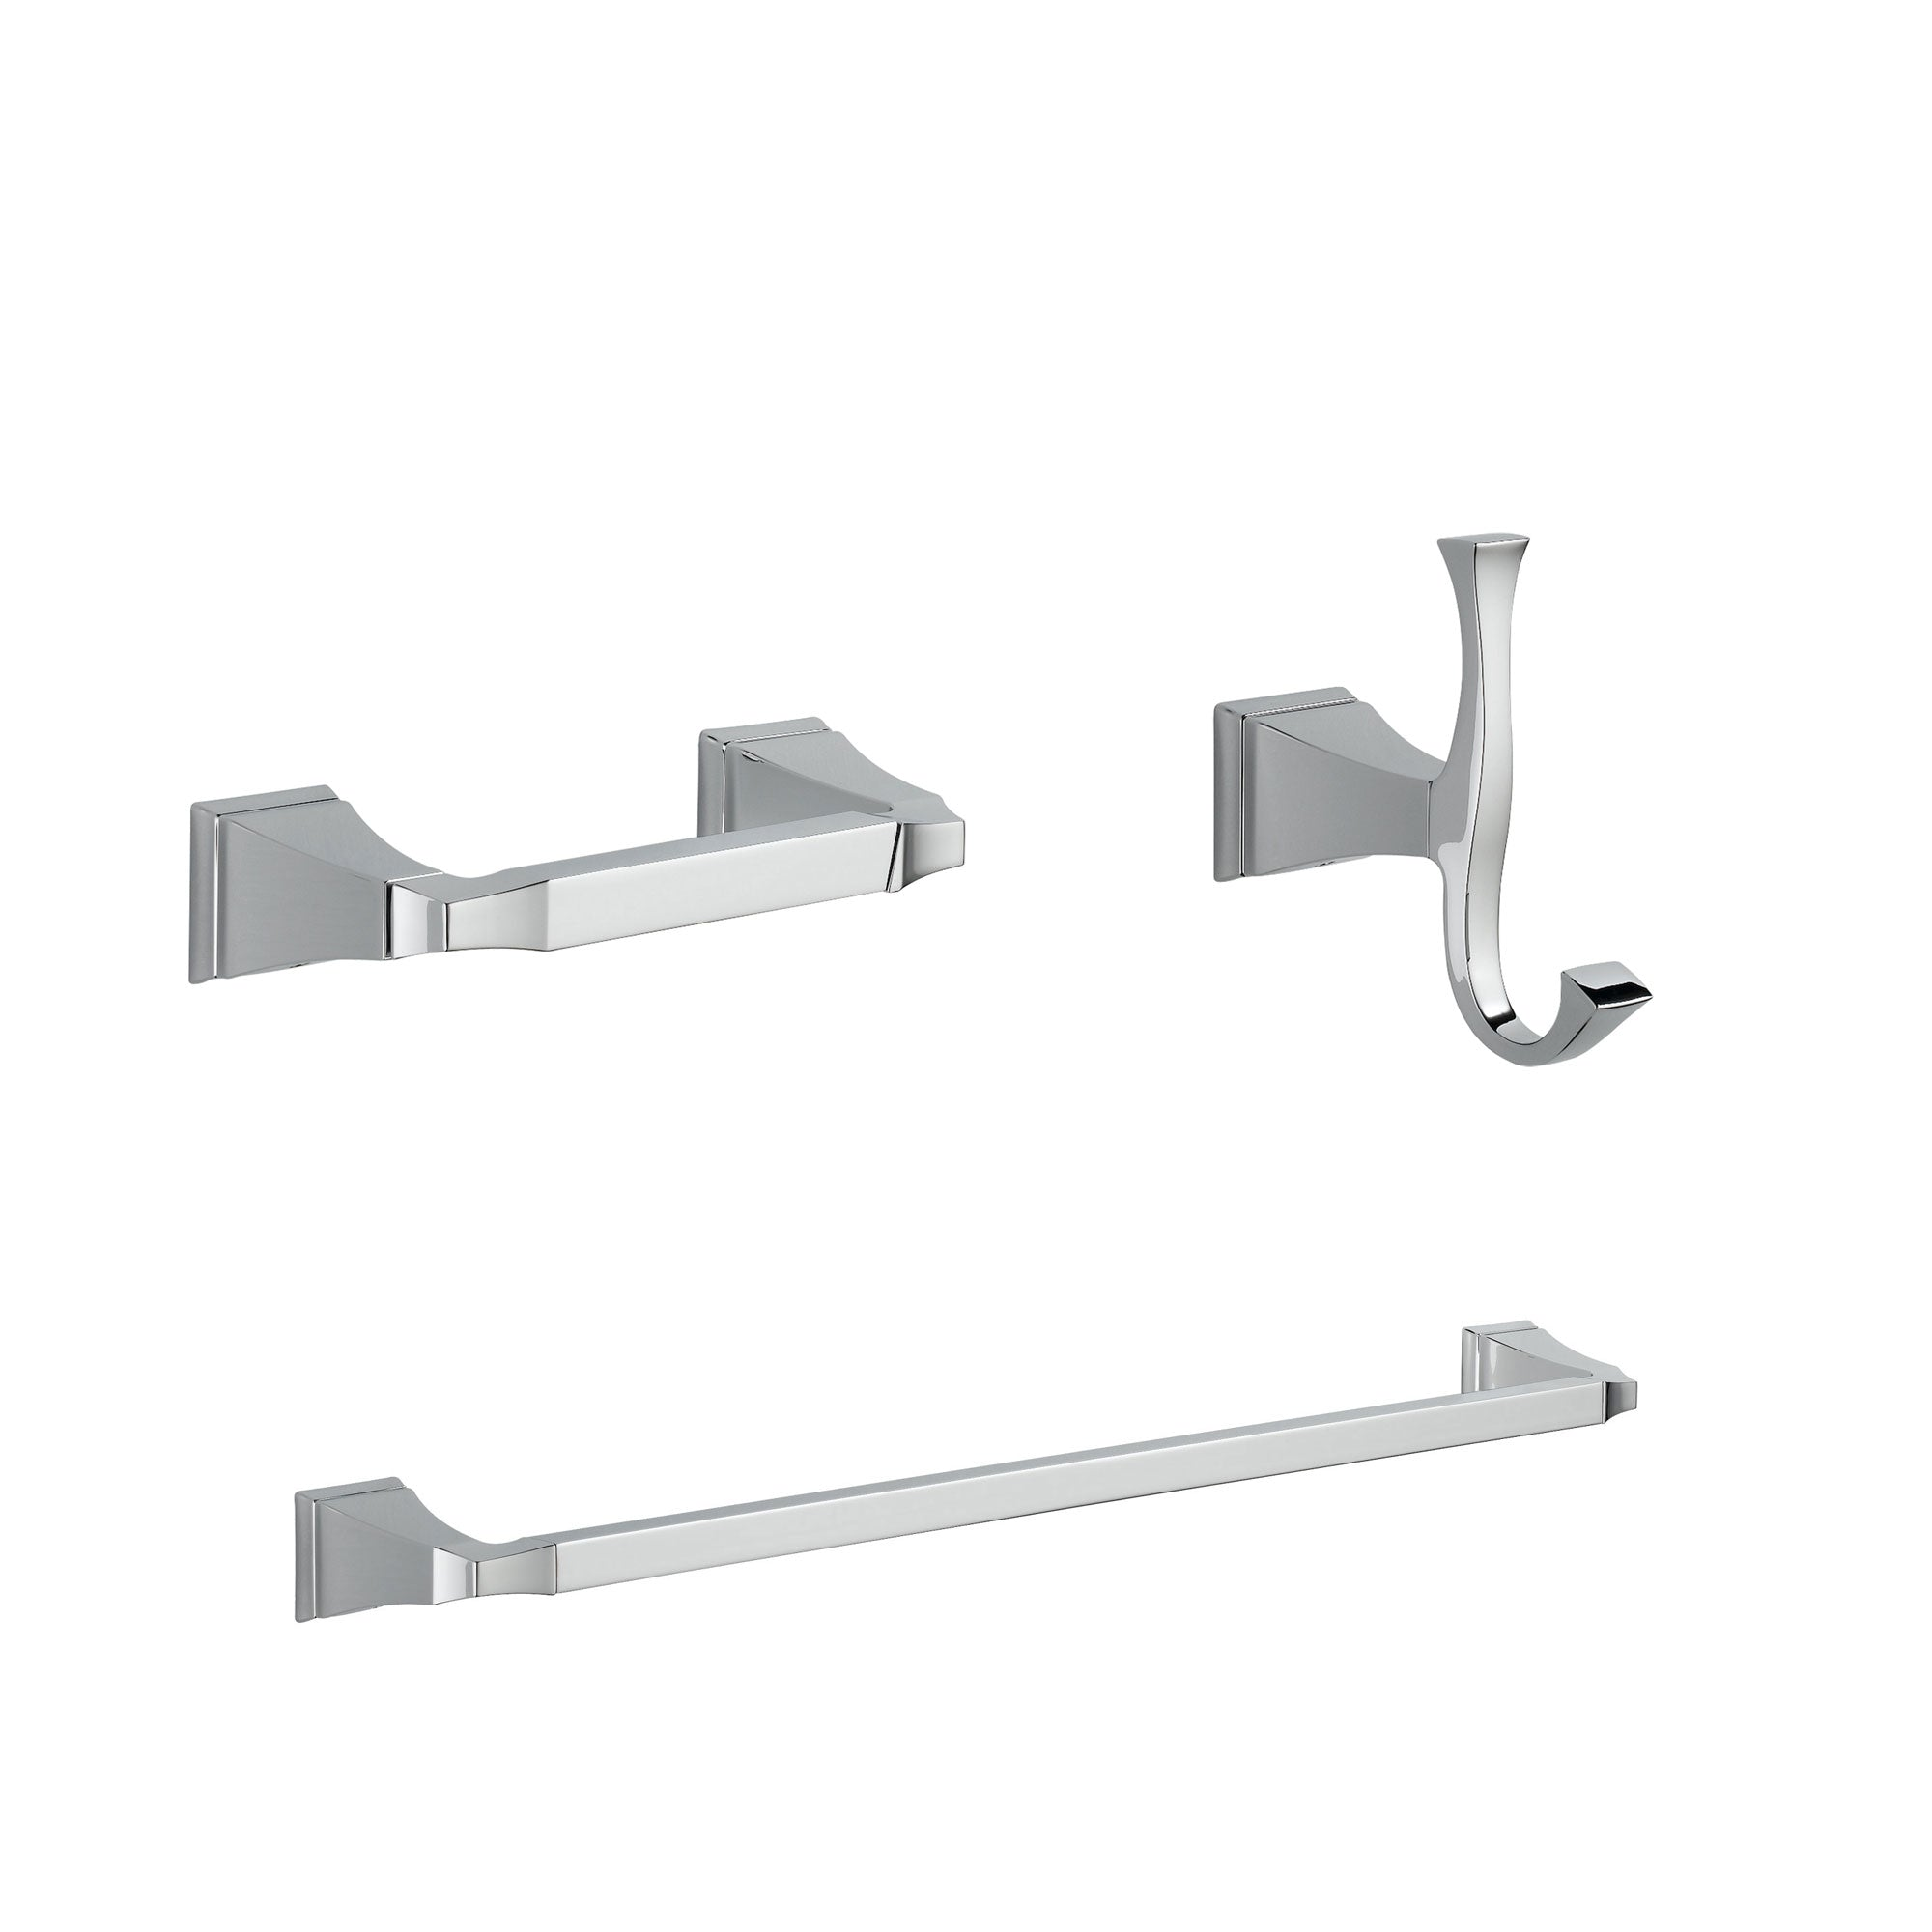 "Delta Dryden Chrome BASICS Bathroom Accessory Set Includes: 24"" Towel Bar, Toilet Paper Holder, and Robe Hook D10031AP"